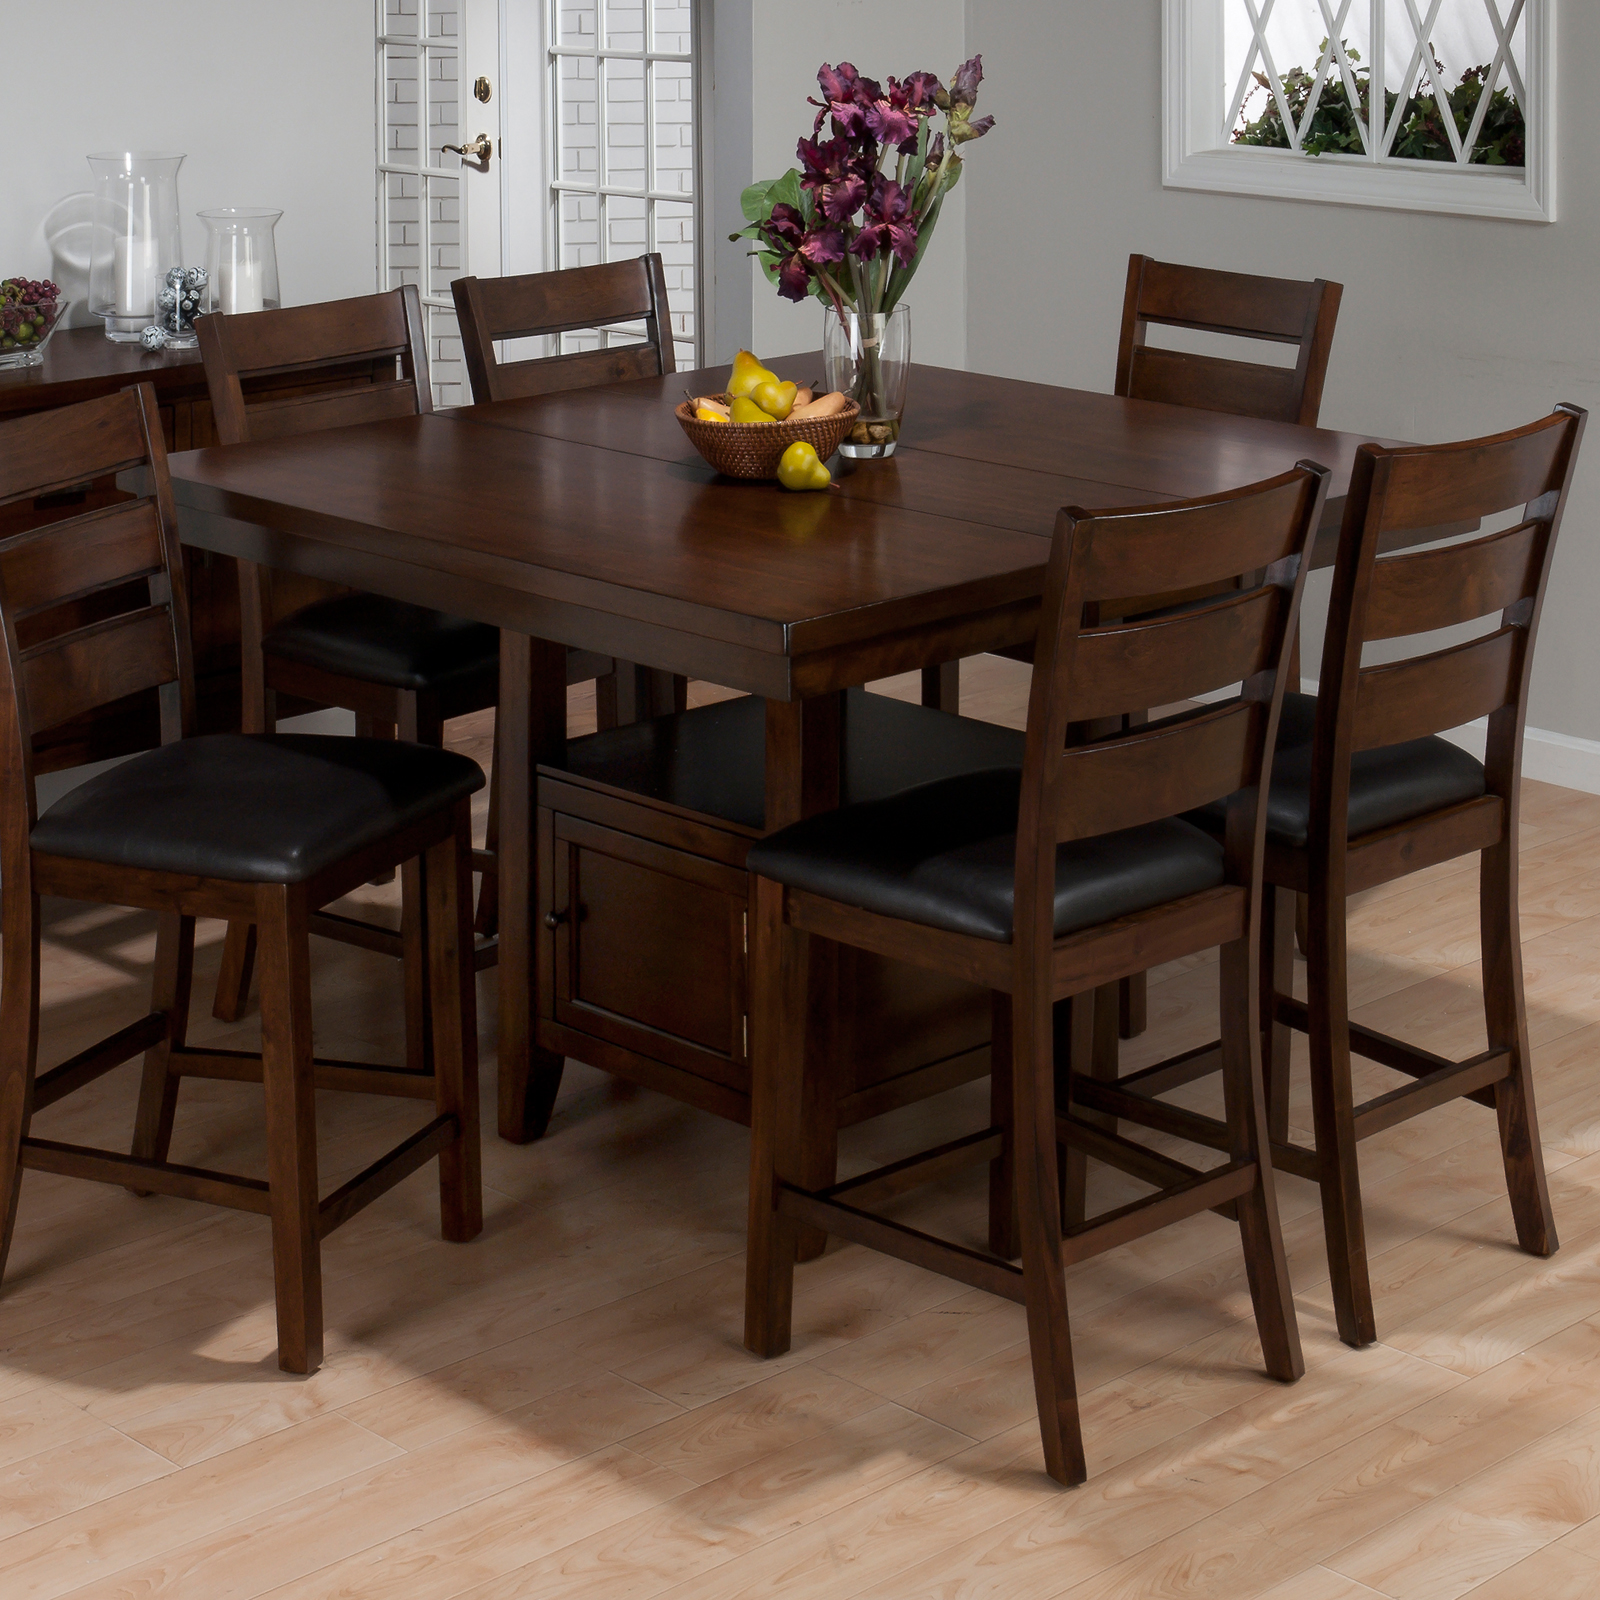 A America Laurelhurst Wine Storage Counter Height Dining Table   Rustic Oak  | Hayneedle